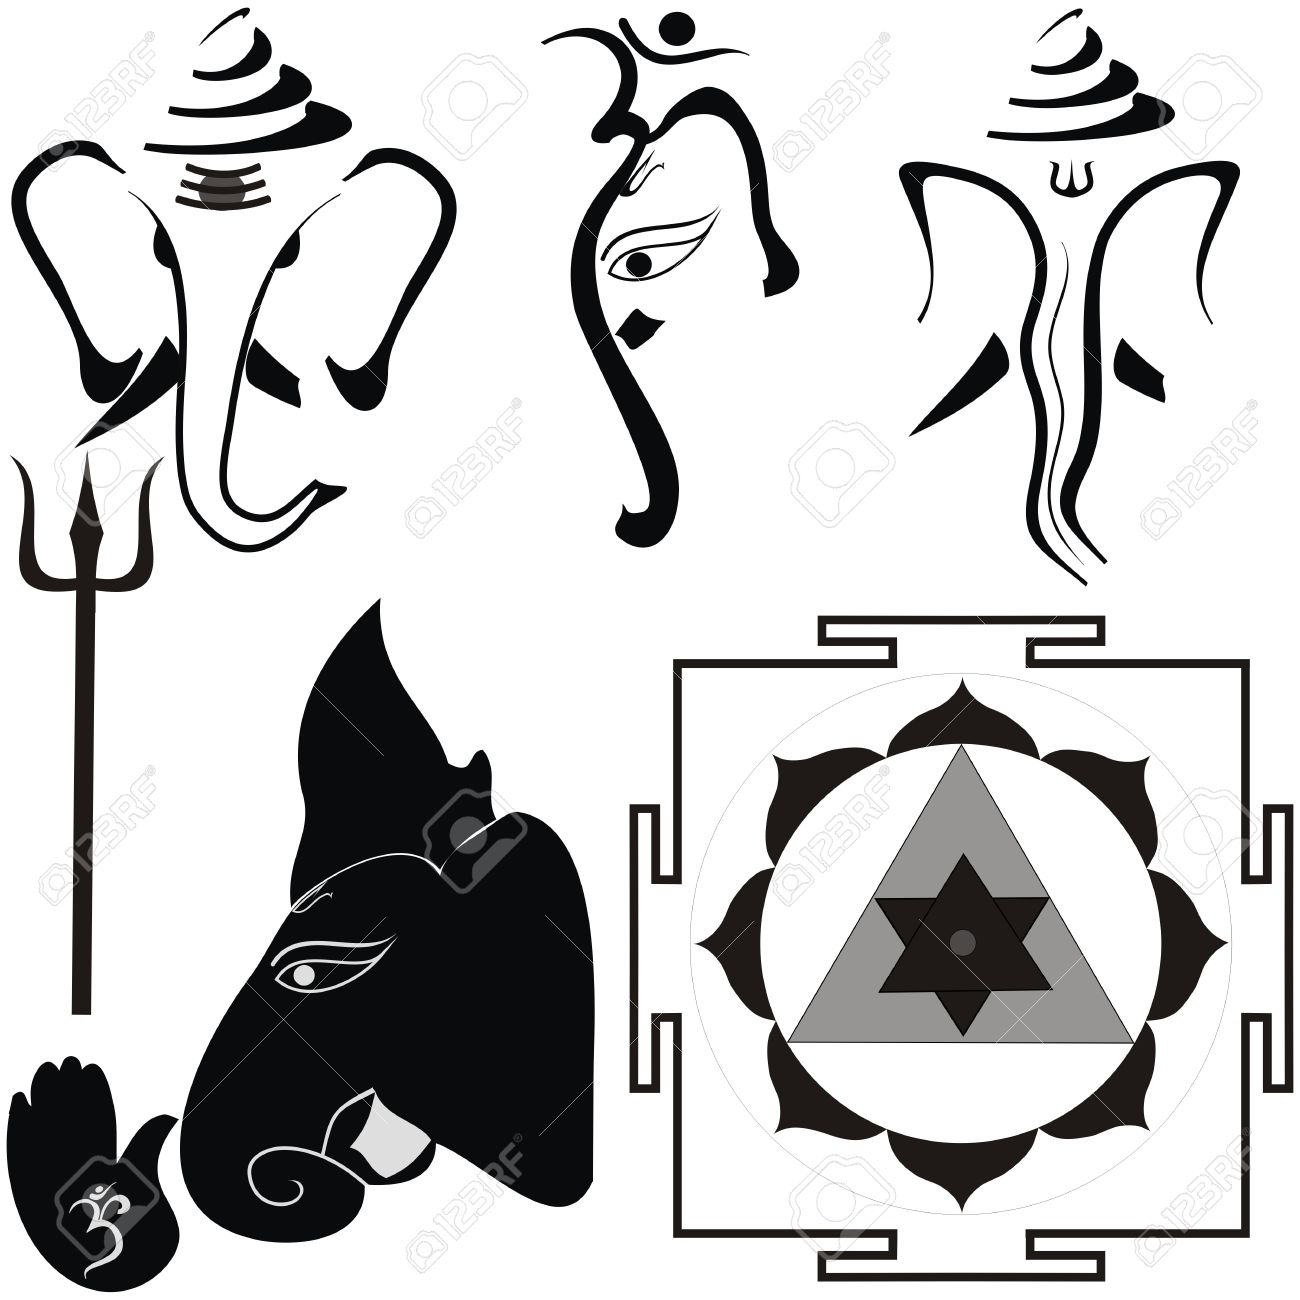 Hindu God Shri Ganesha and his attributes, yantra and trishul Stock Vector - 23116121